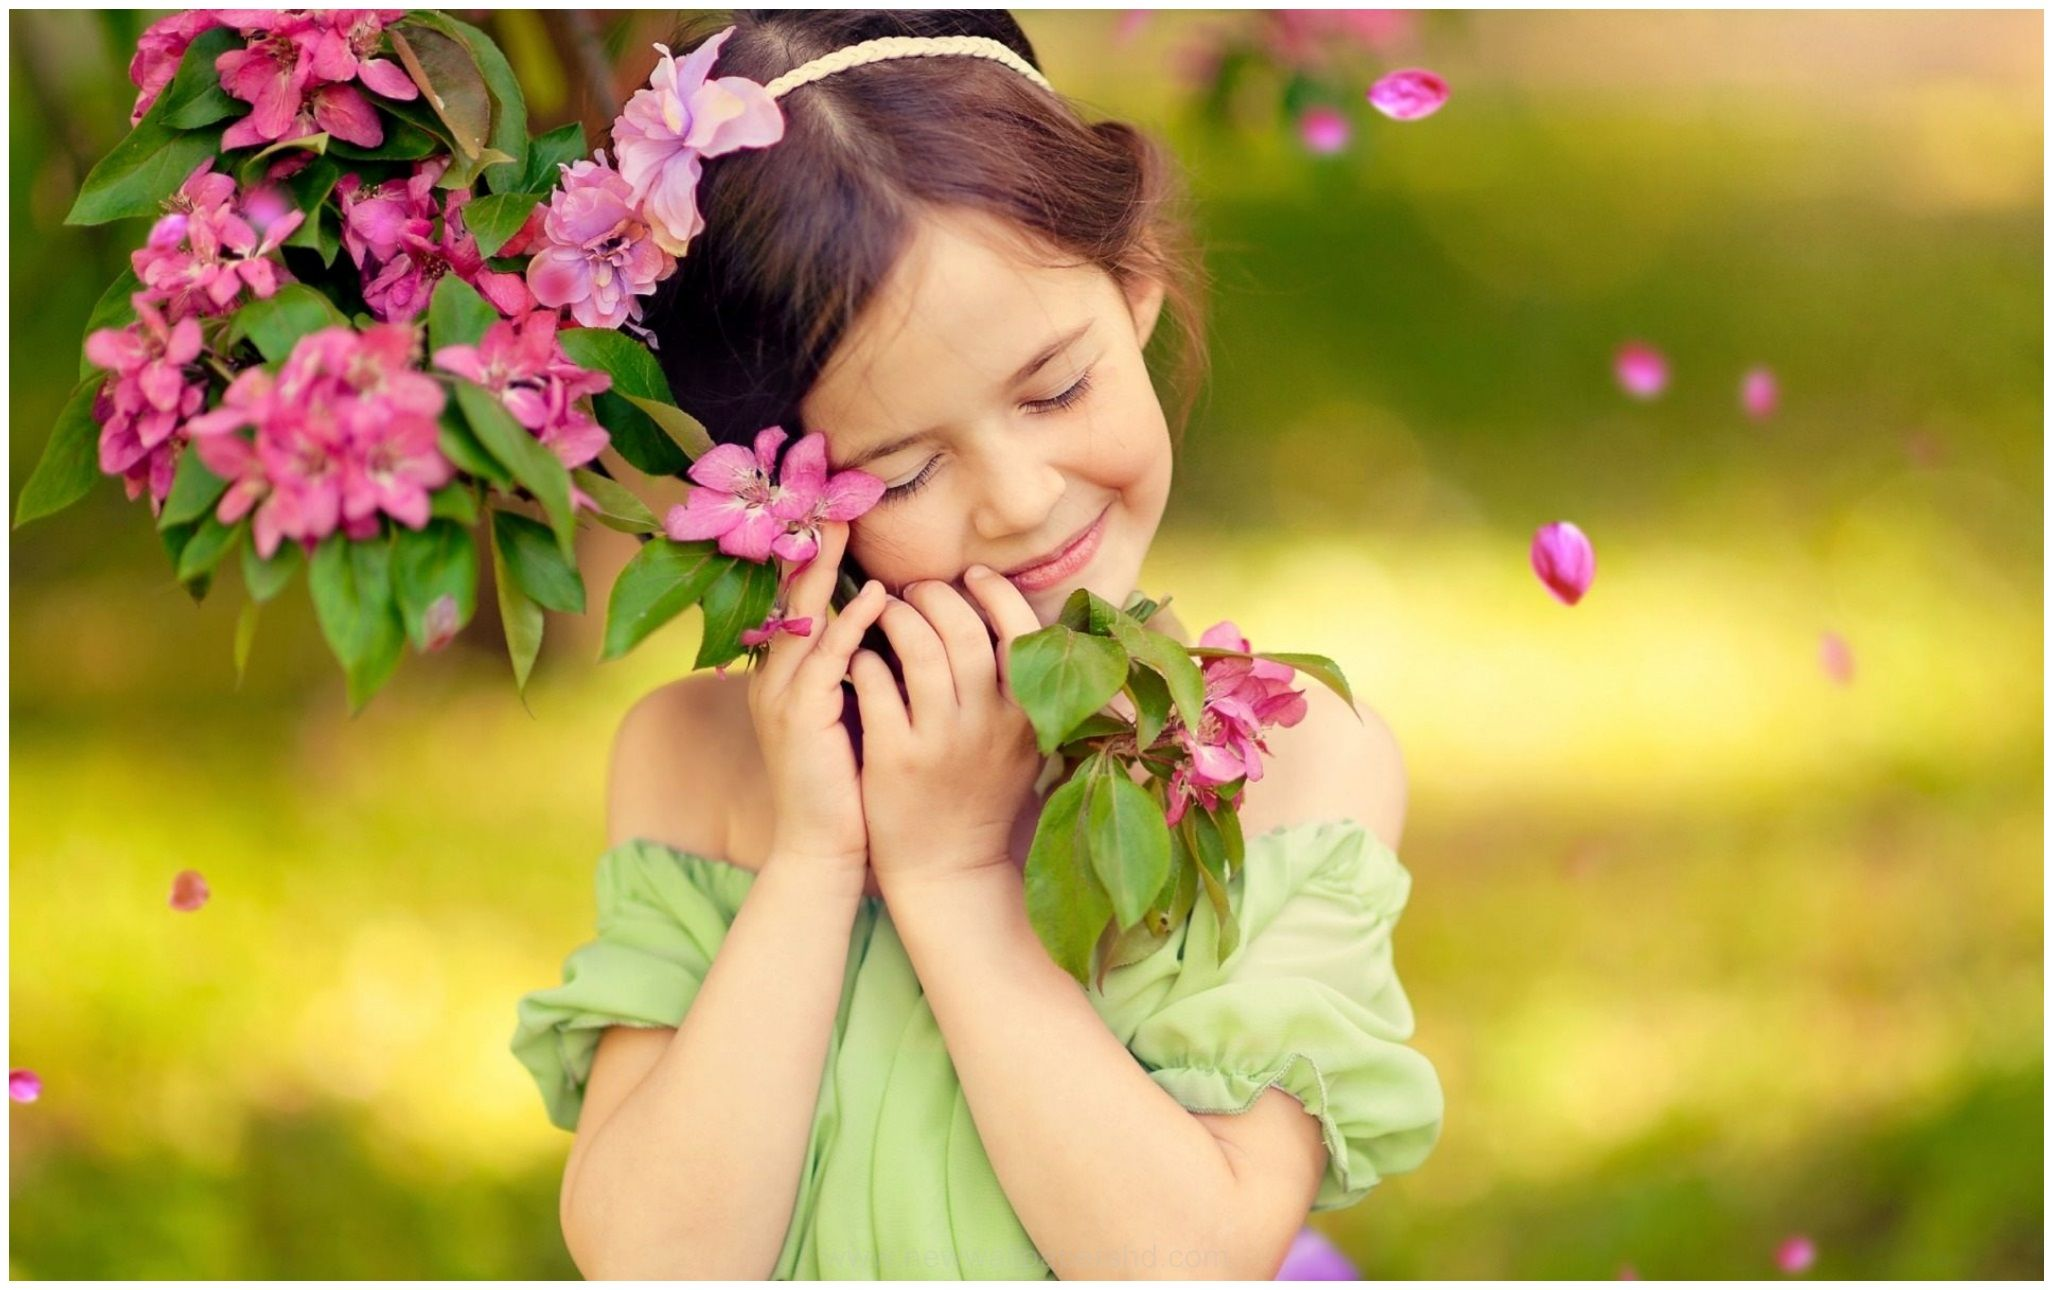 good mood of happy girl hd wallpaper | wallpapers | pinterest